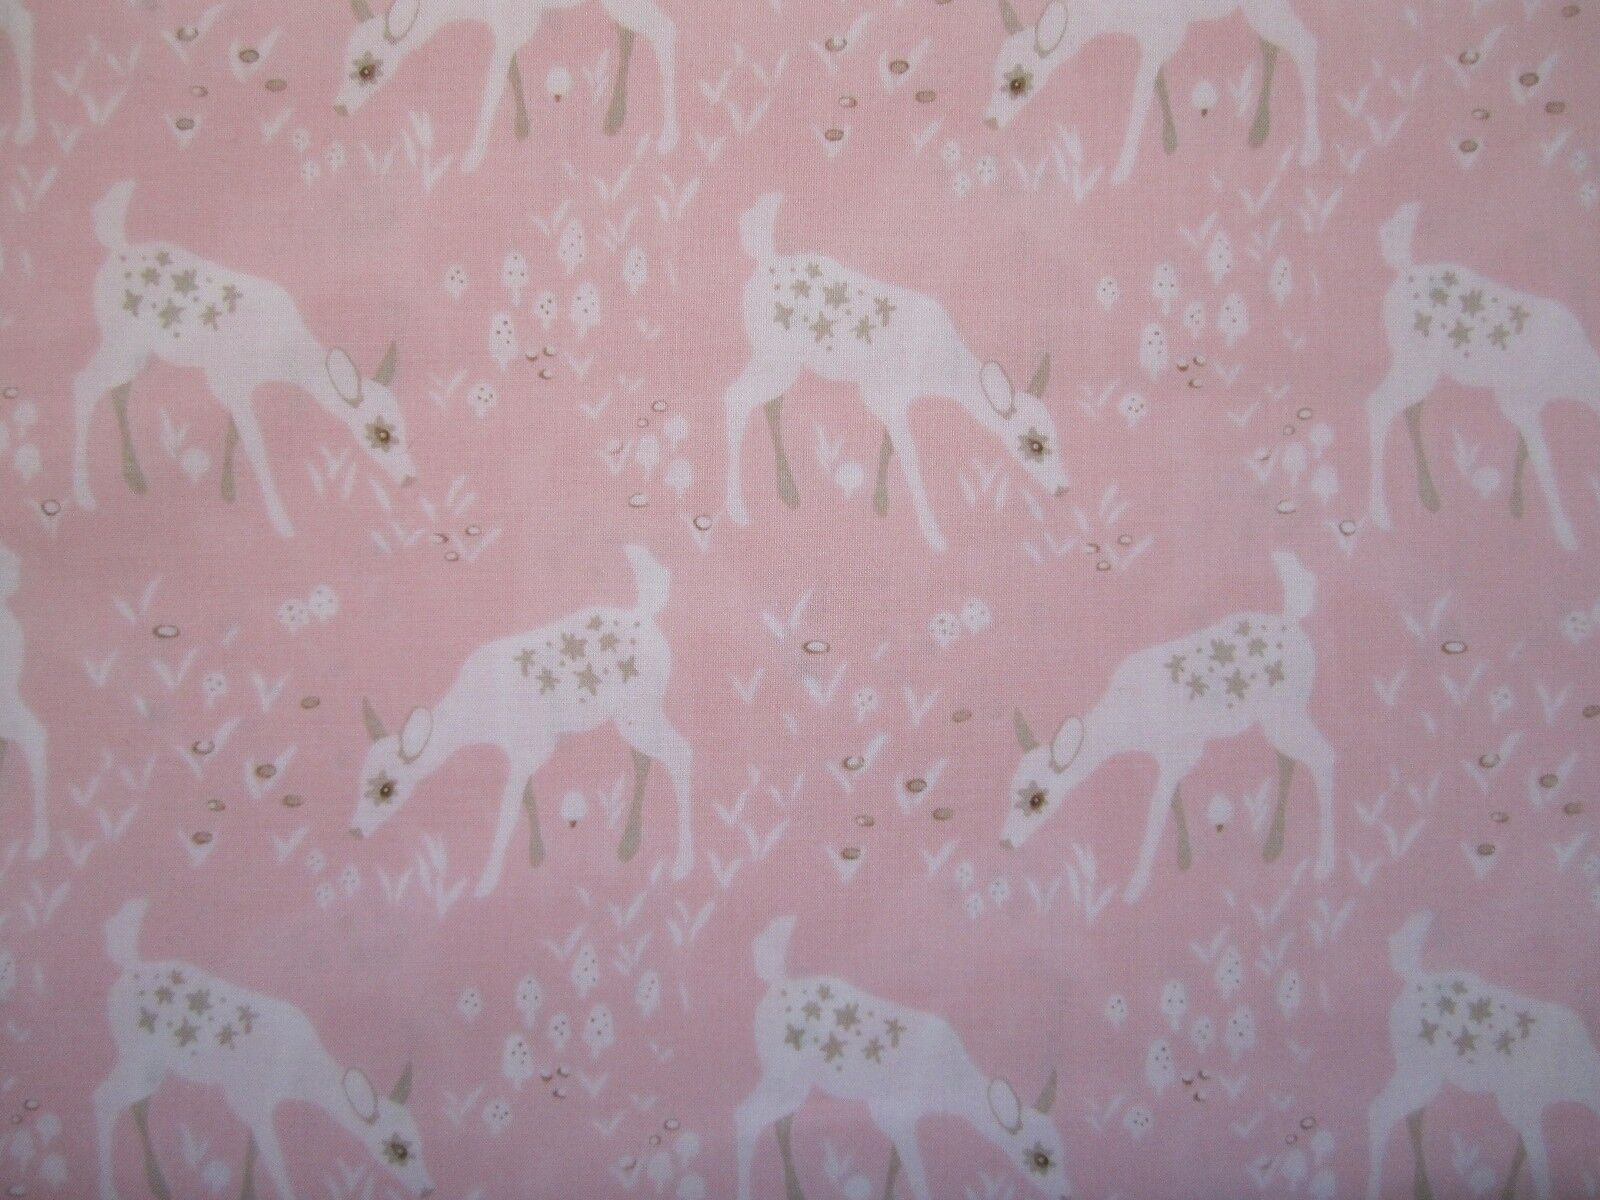 Woodland Gathering - young deer/bambi on pink 100% cotton fabric from Clothworks